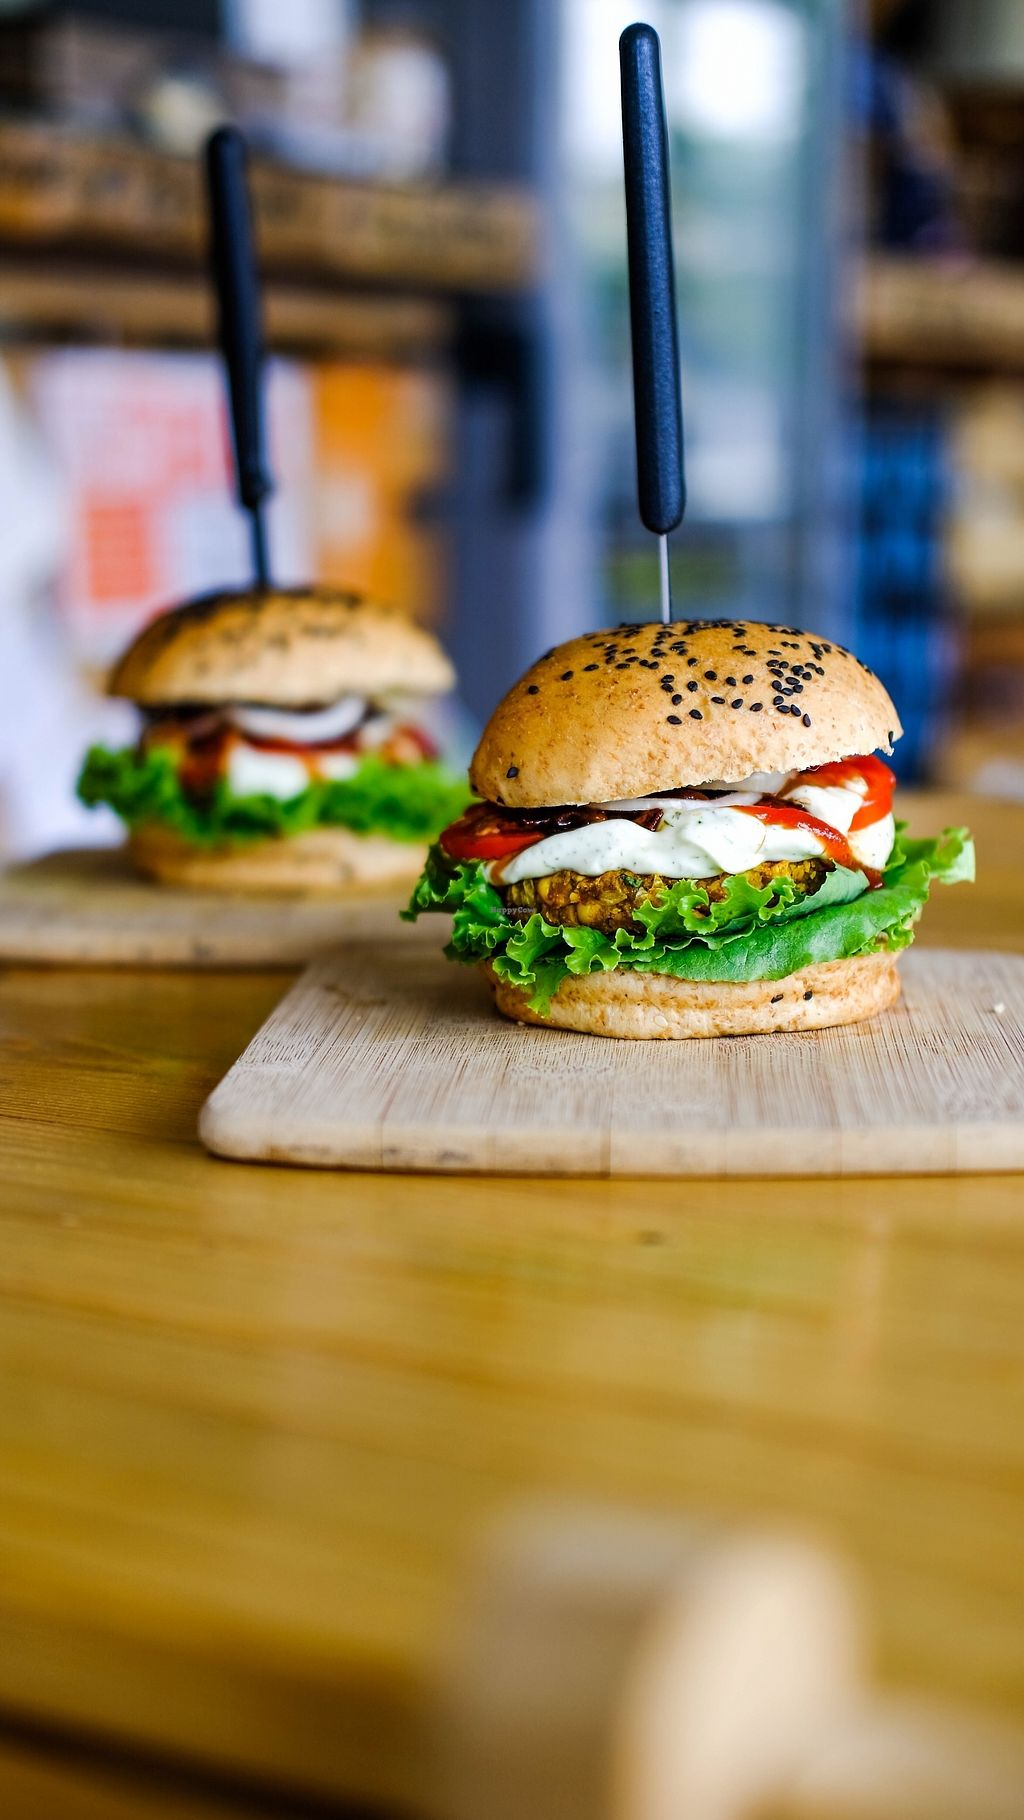 """Photo of The Vegan Dinosaur  by <a href=""""/members/profile/TheVeganDinosaur"""">TheVeganDinosaur</a> <br/>Vege Burger <br/> October 11, 2017  - <a href='/contact/abuse/image/59921/314273'>Report</a>"""